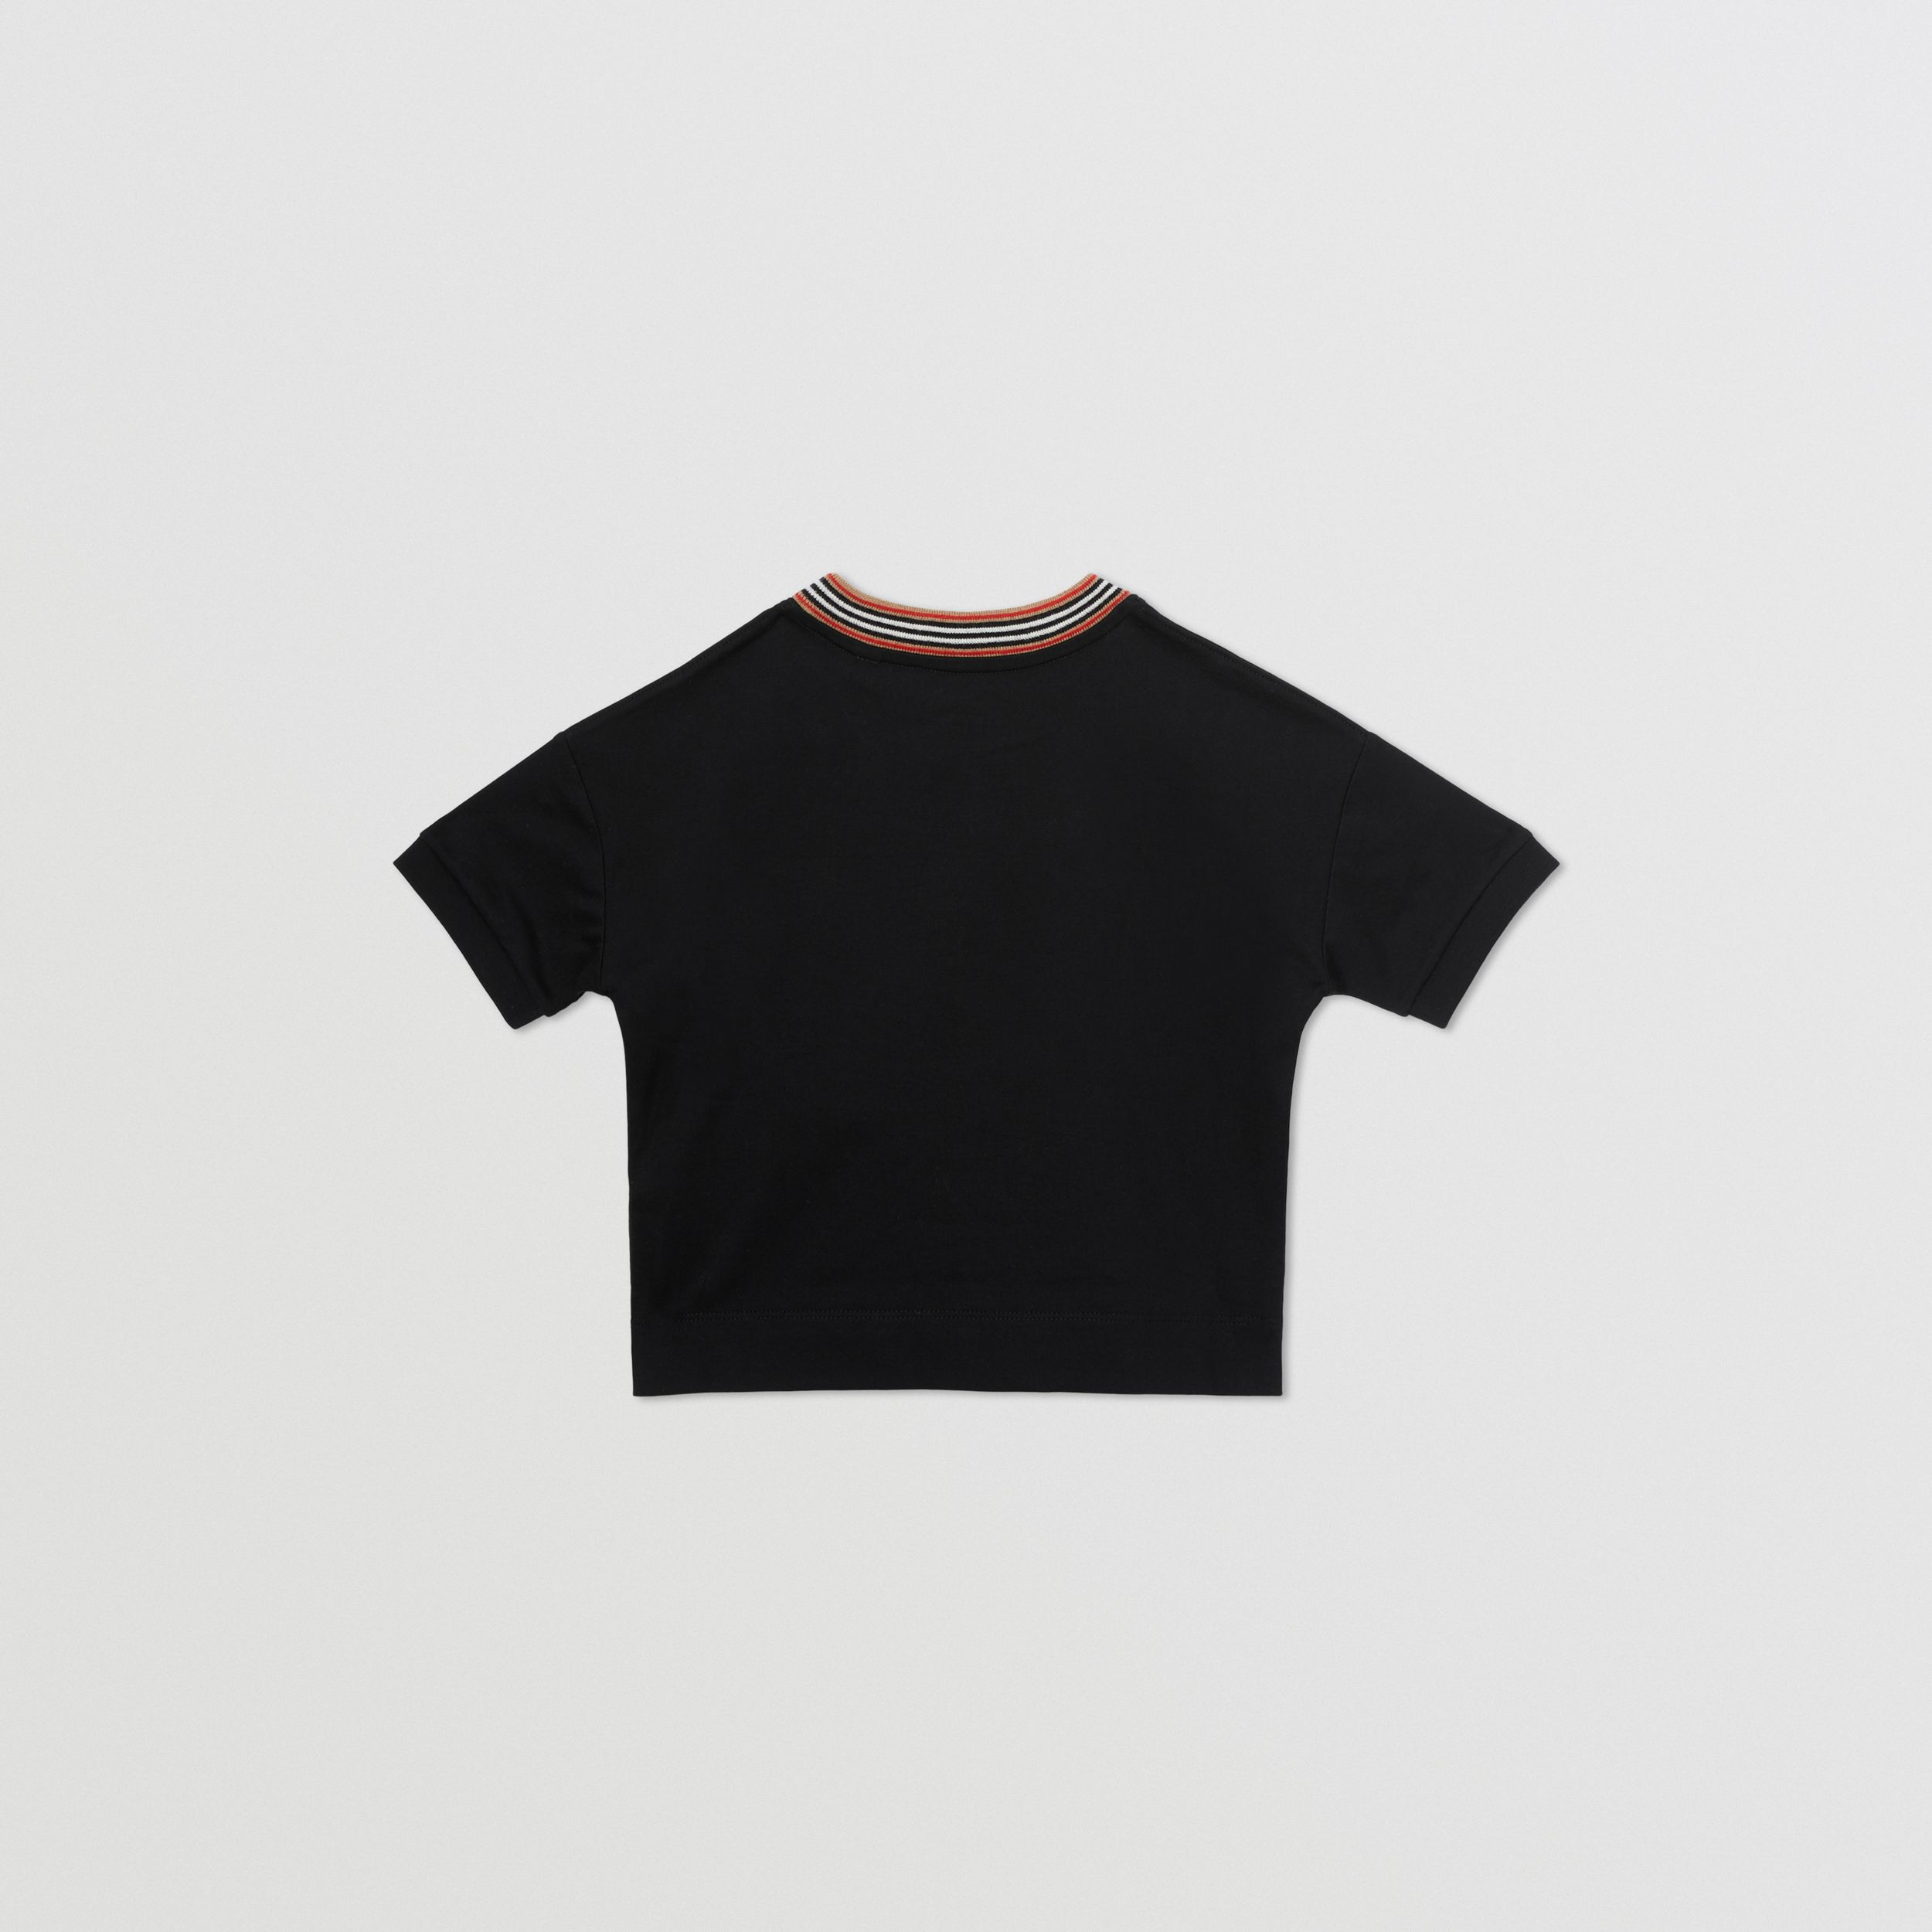 Cake Print Cotton T-shirt in Black | Burberry - 4